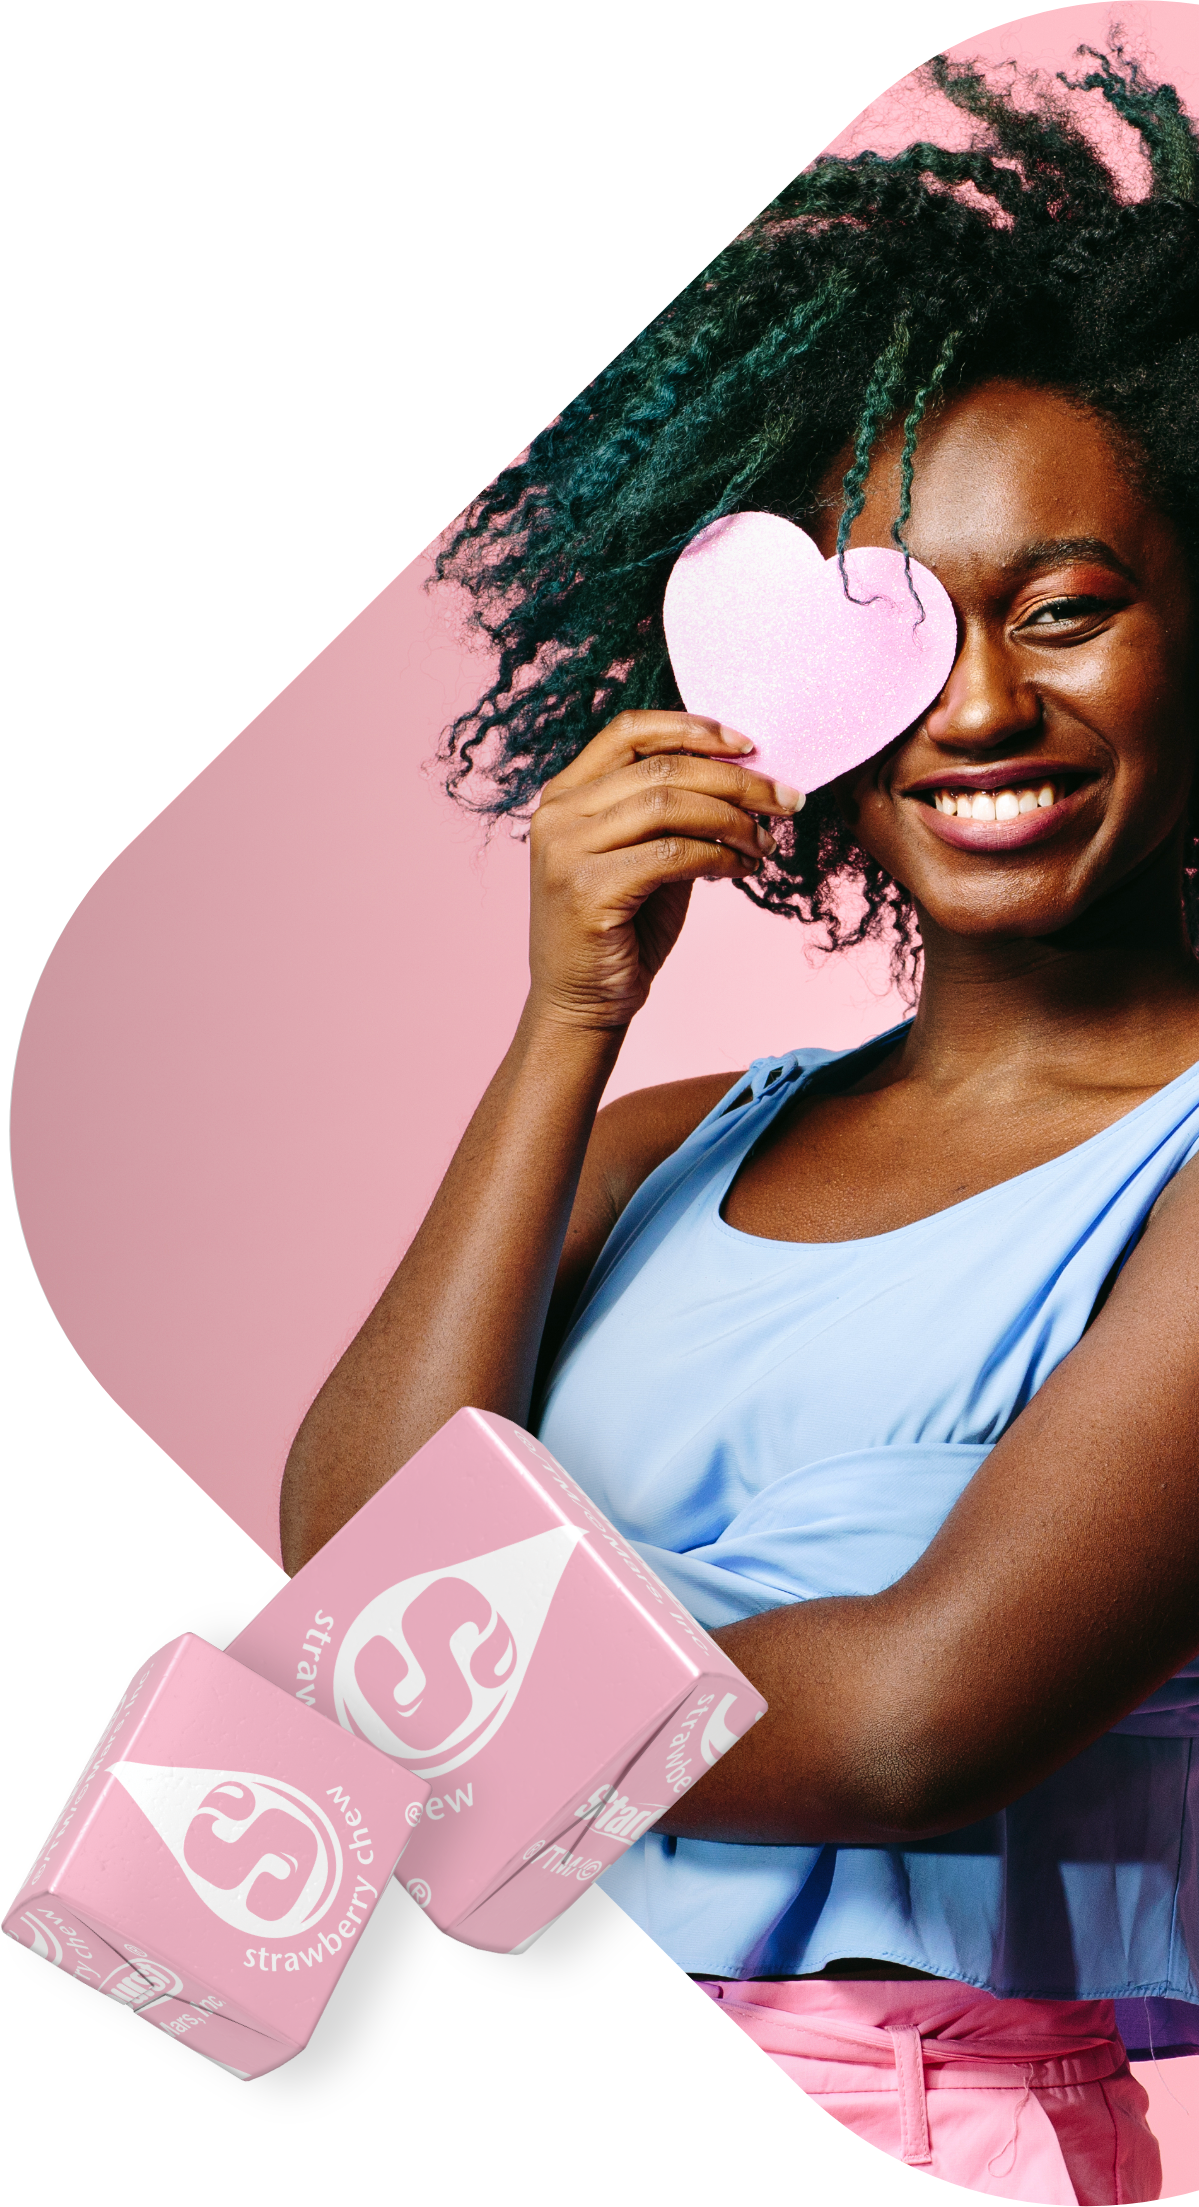 An image of a woman smiling while holding a heart shape over her eye